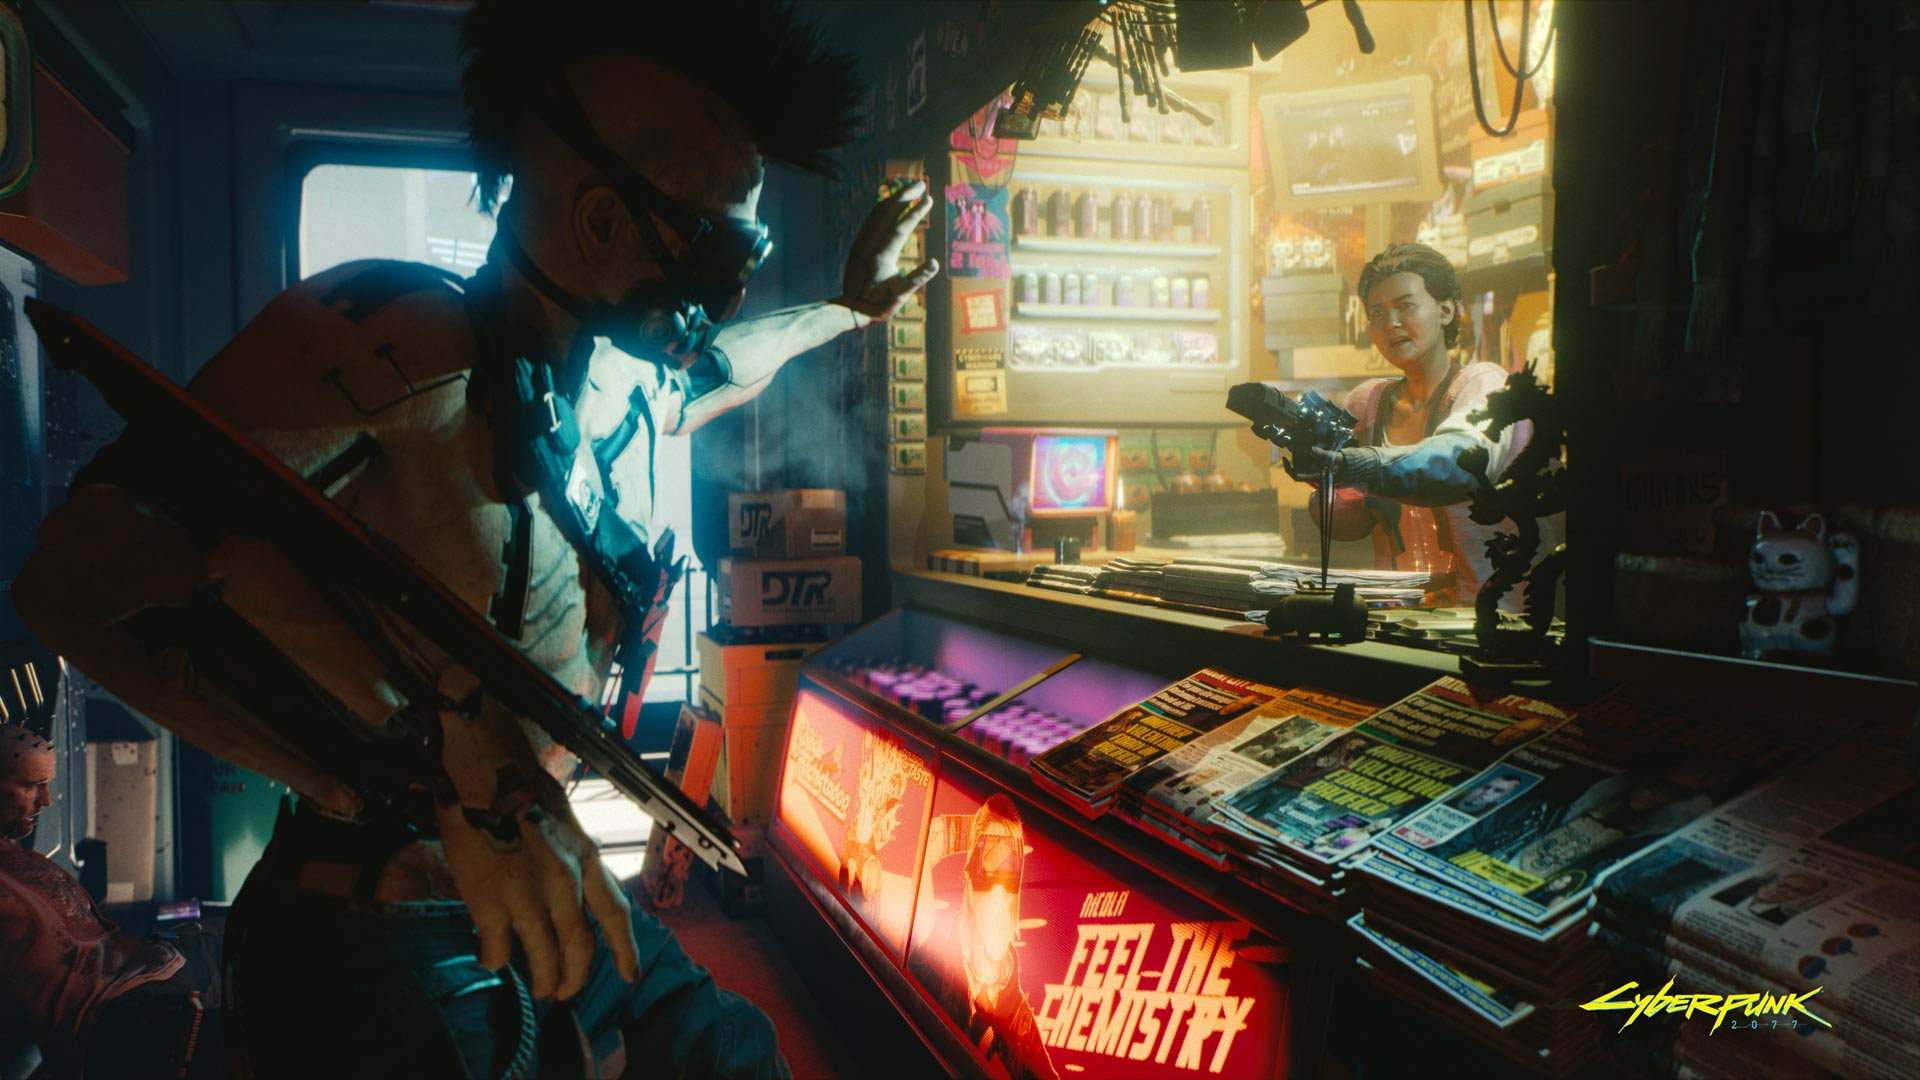 Cyberpunk 2077 From The Creators Of The Witcher 3 Wild Hunt